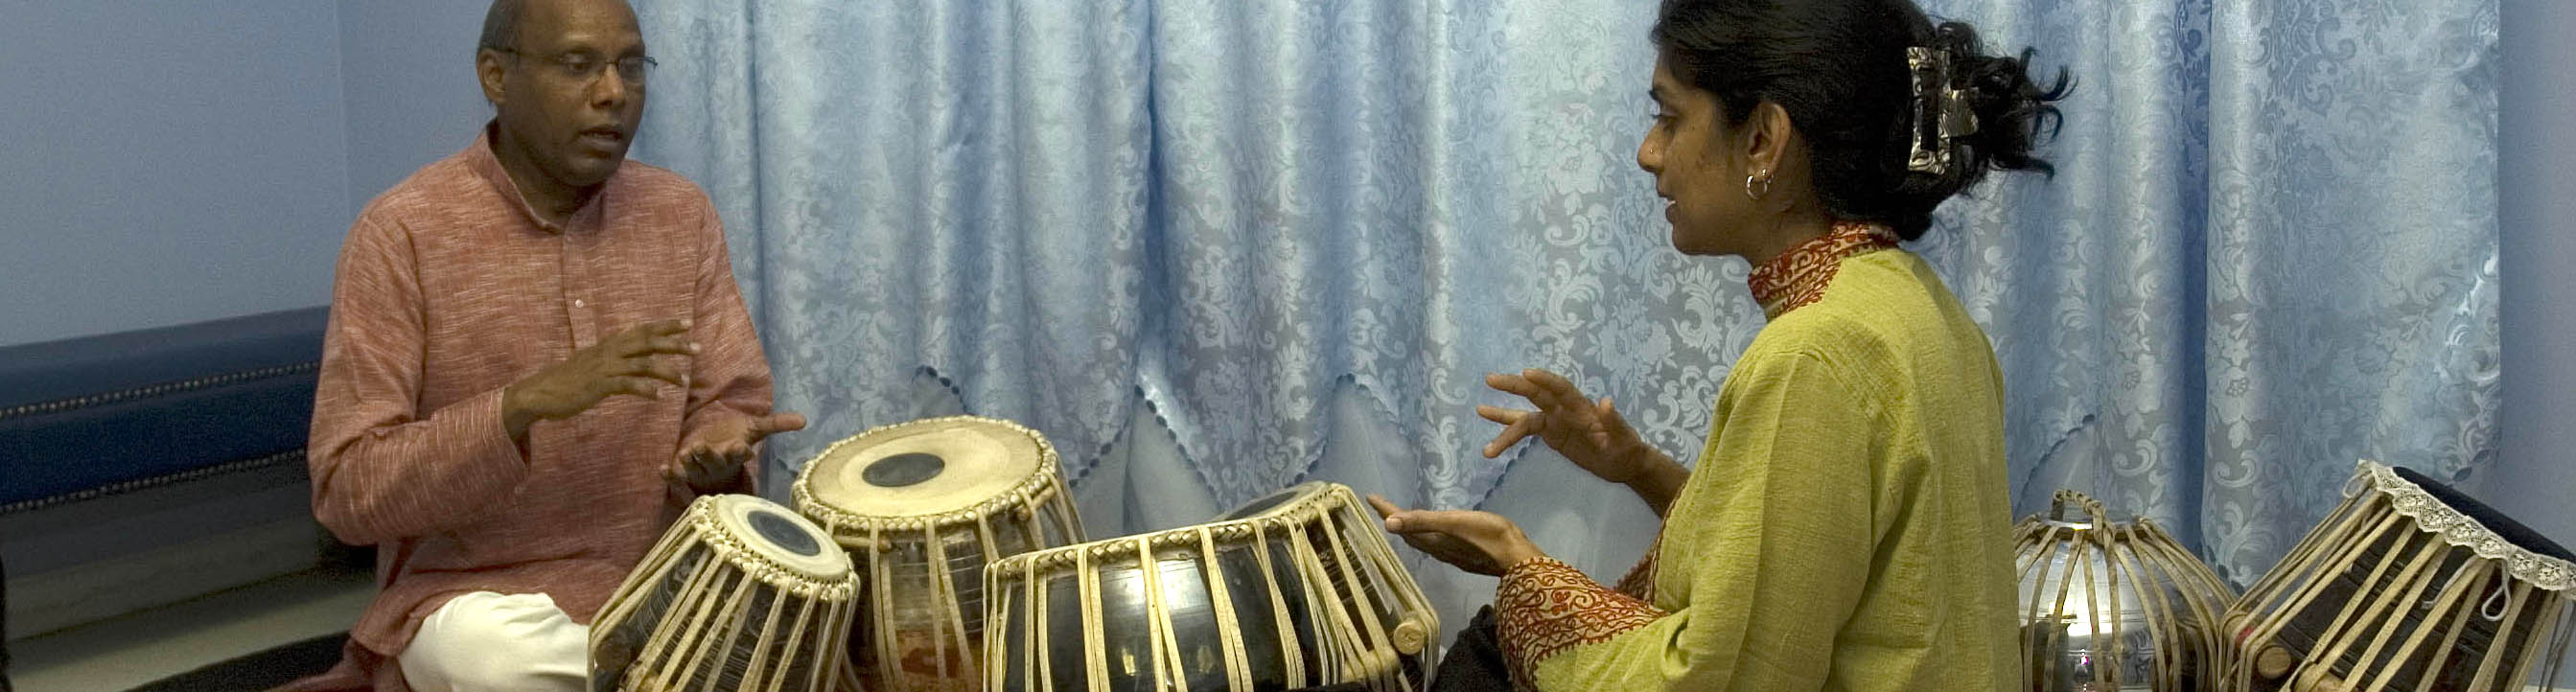 Chris Pereji playing tabla drums with apprentice Nisha Purushotham. Photo by Maggie Holtzberg.